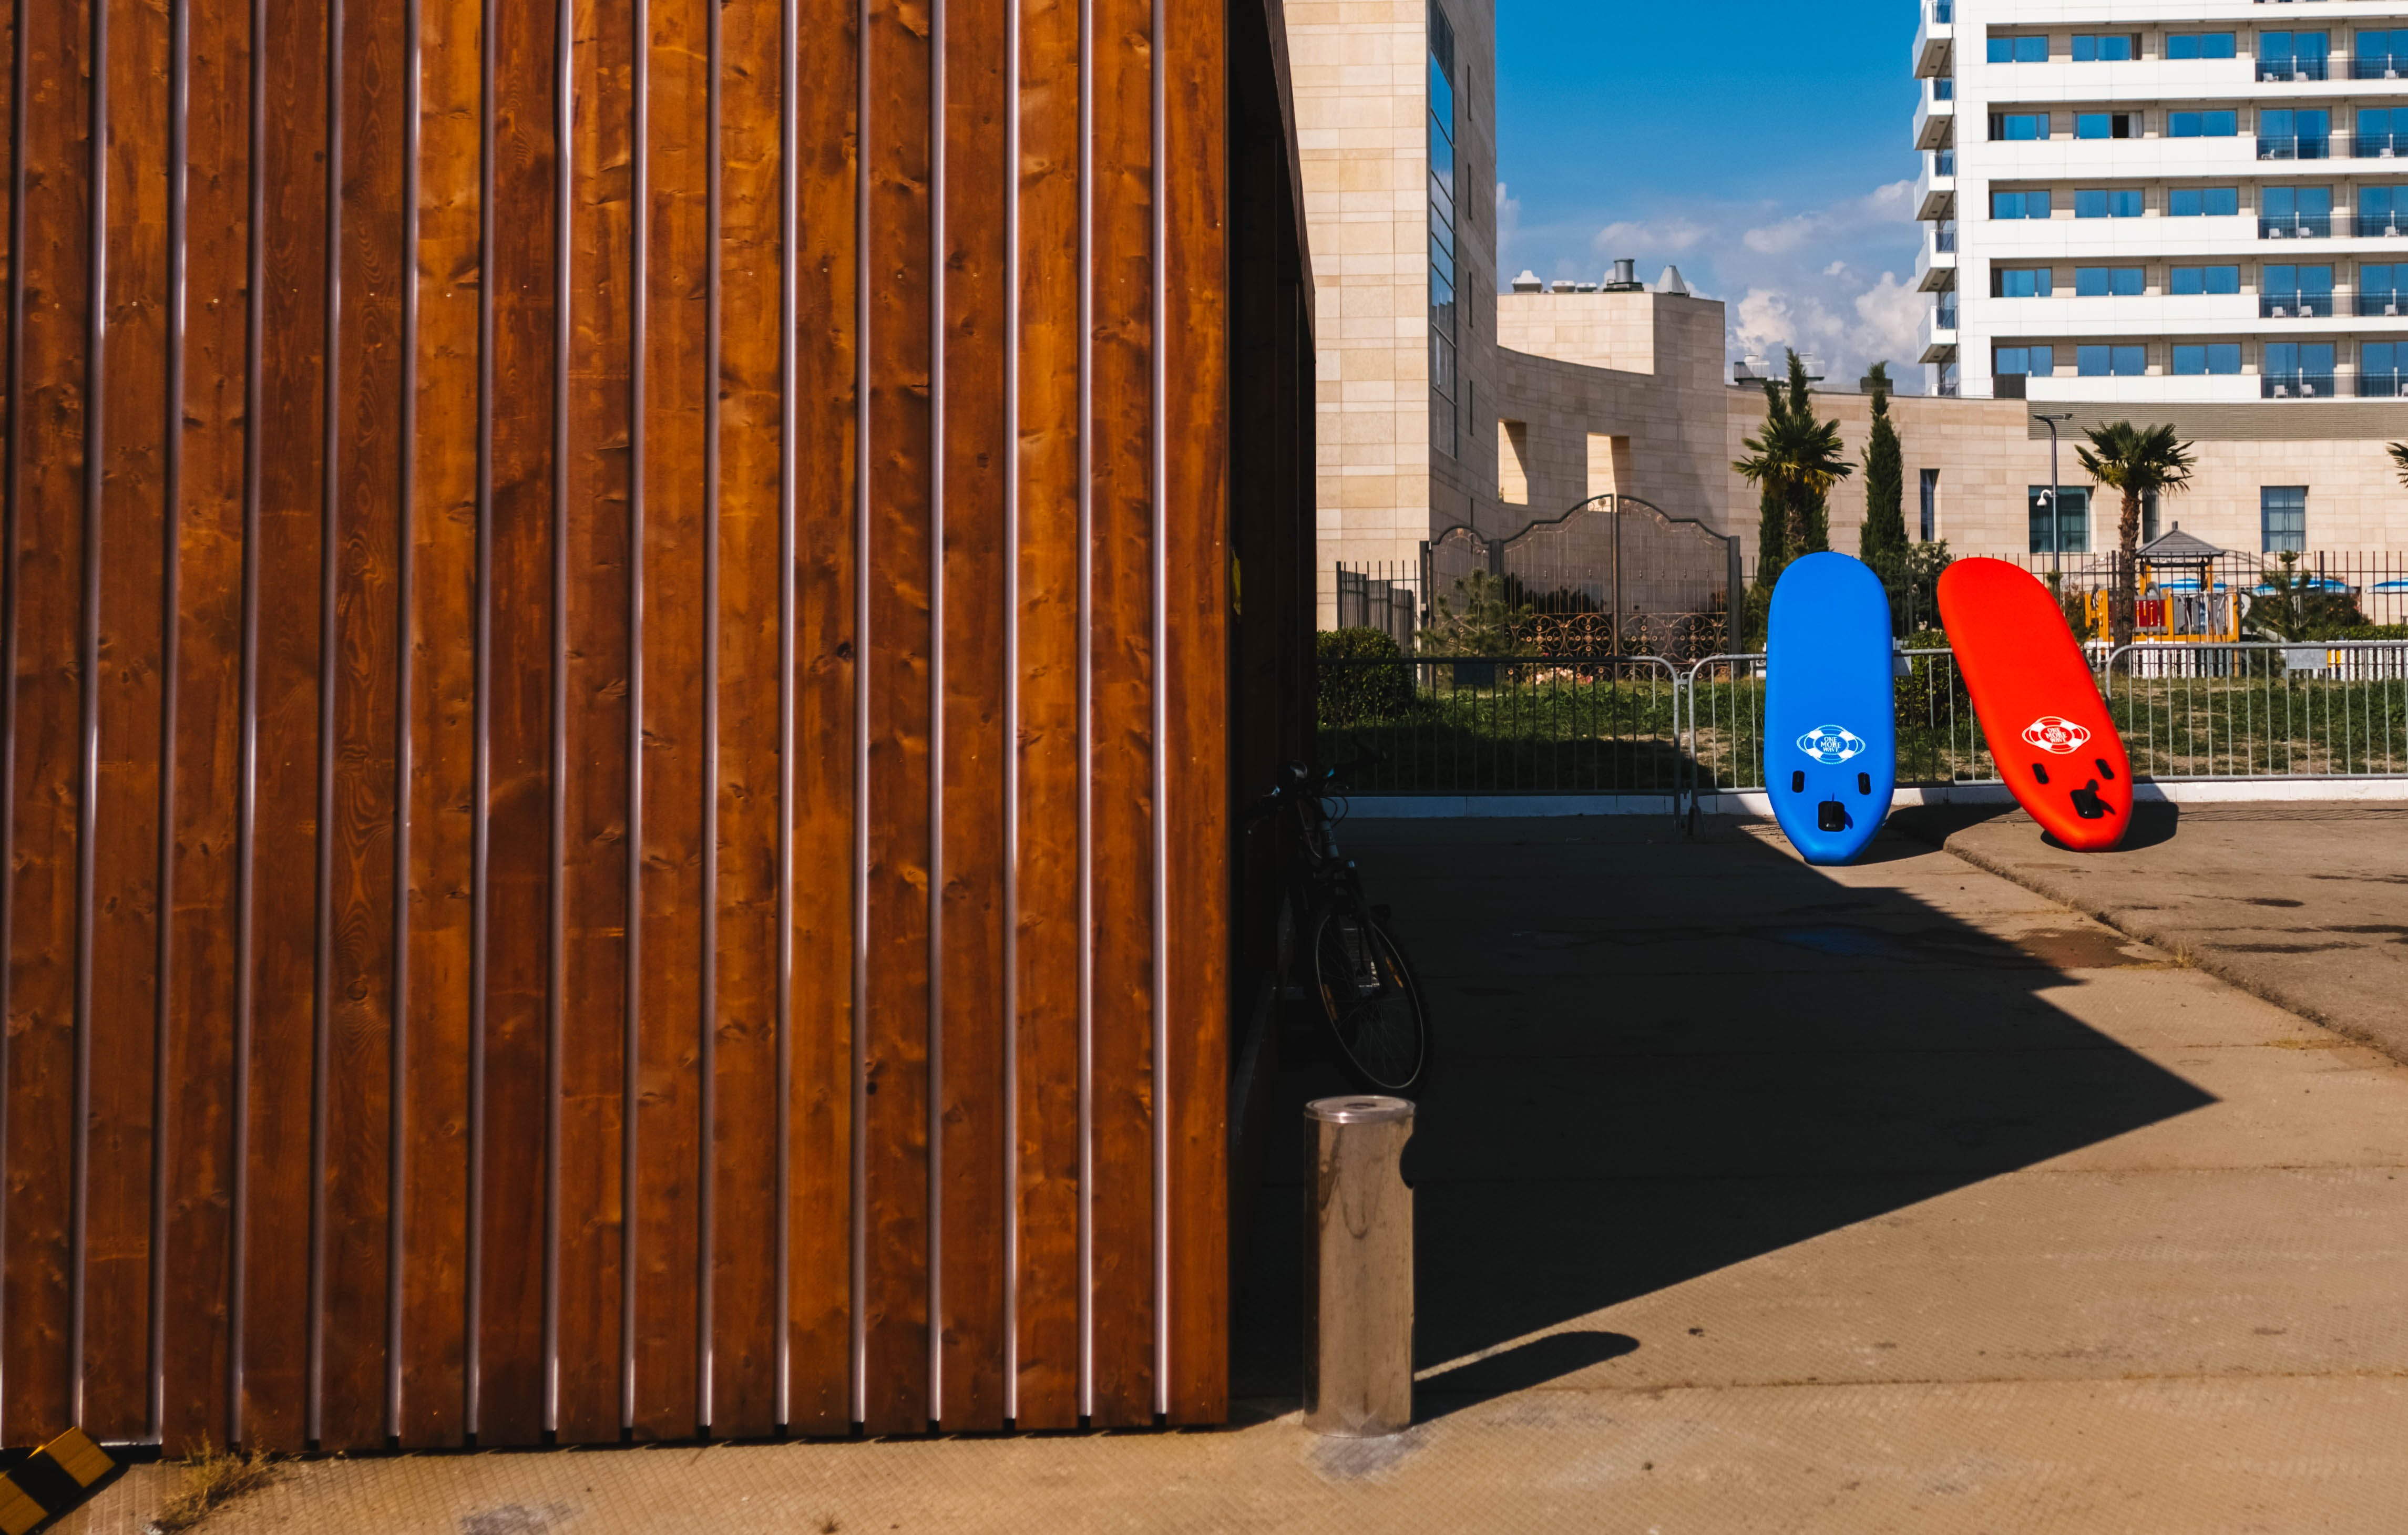 Red and Blue Surfboards Near Brown Wooden House